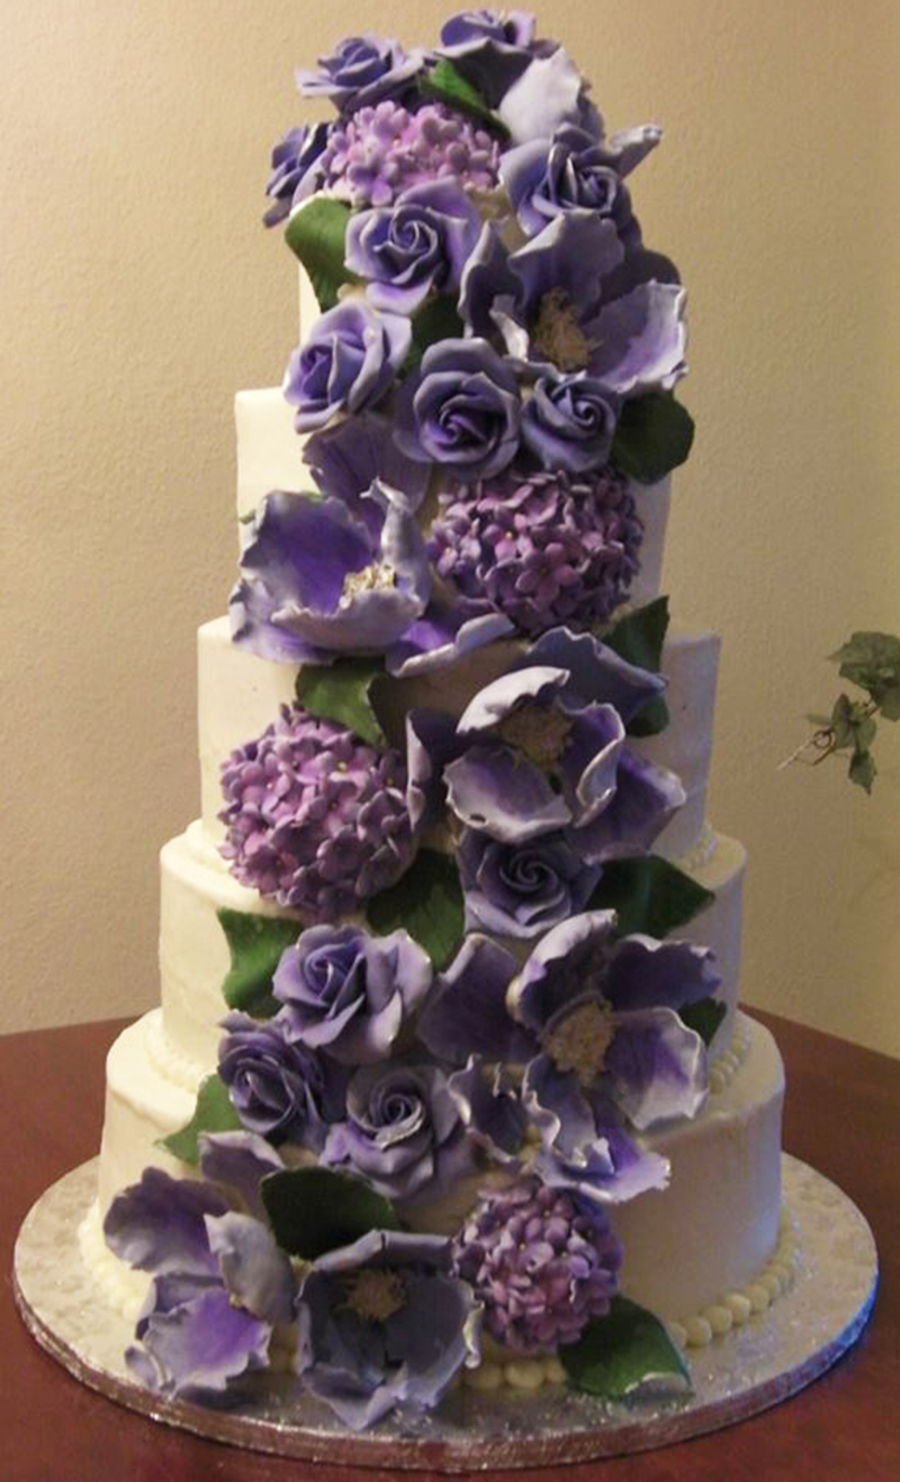 5 Tier White Cake With Pina Colada Filling And Coconut